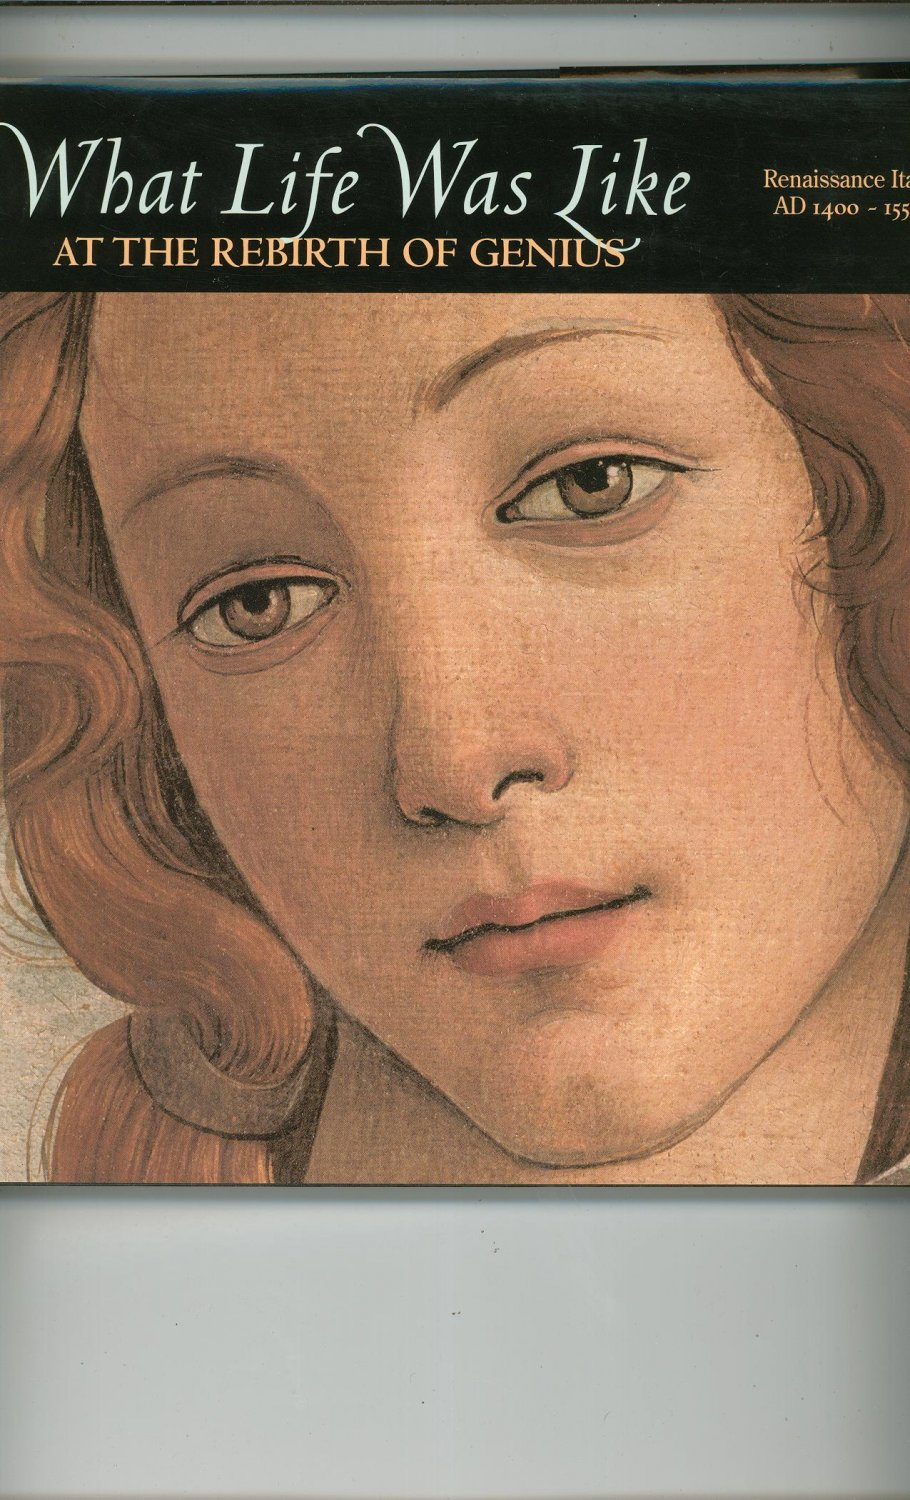 At The Rebirth Of Genius Renaissance Italy 0783554613 What Life Was Like